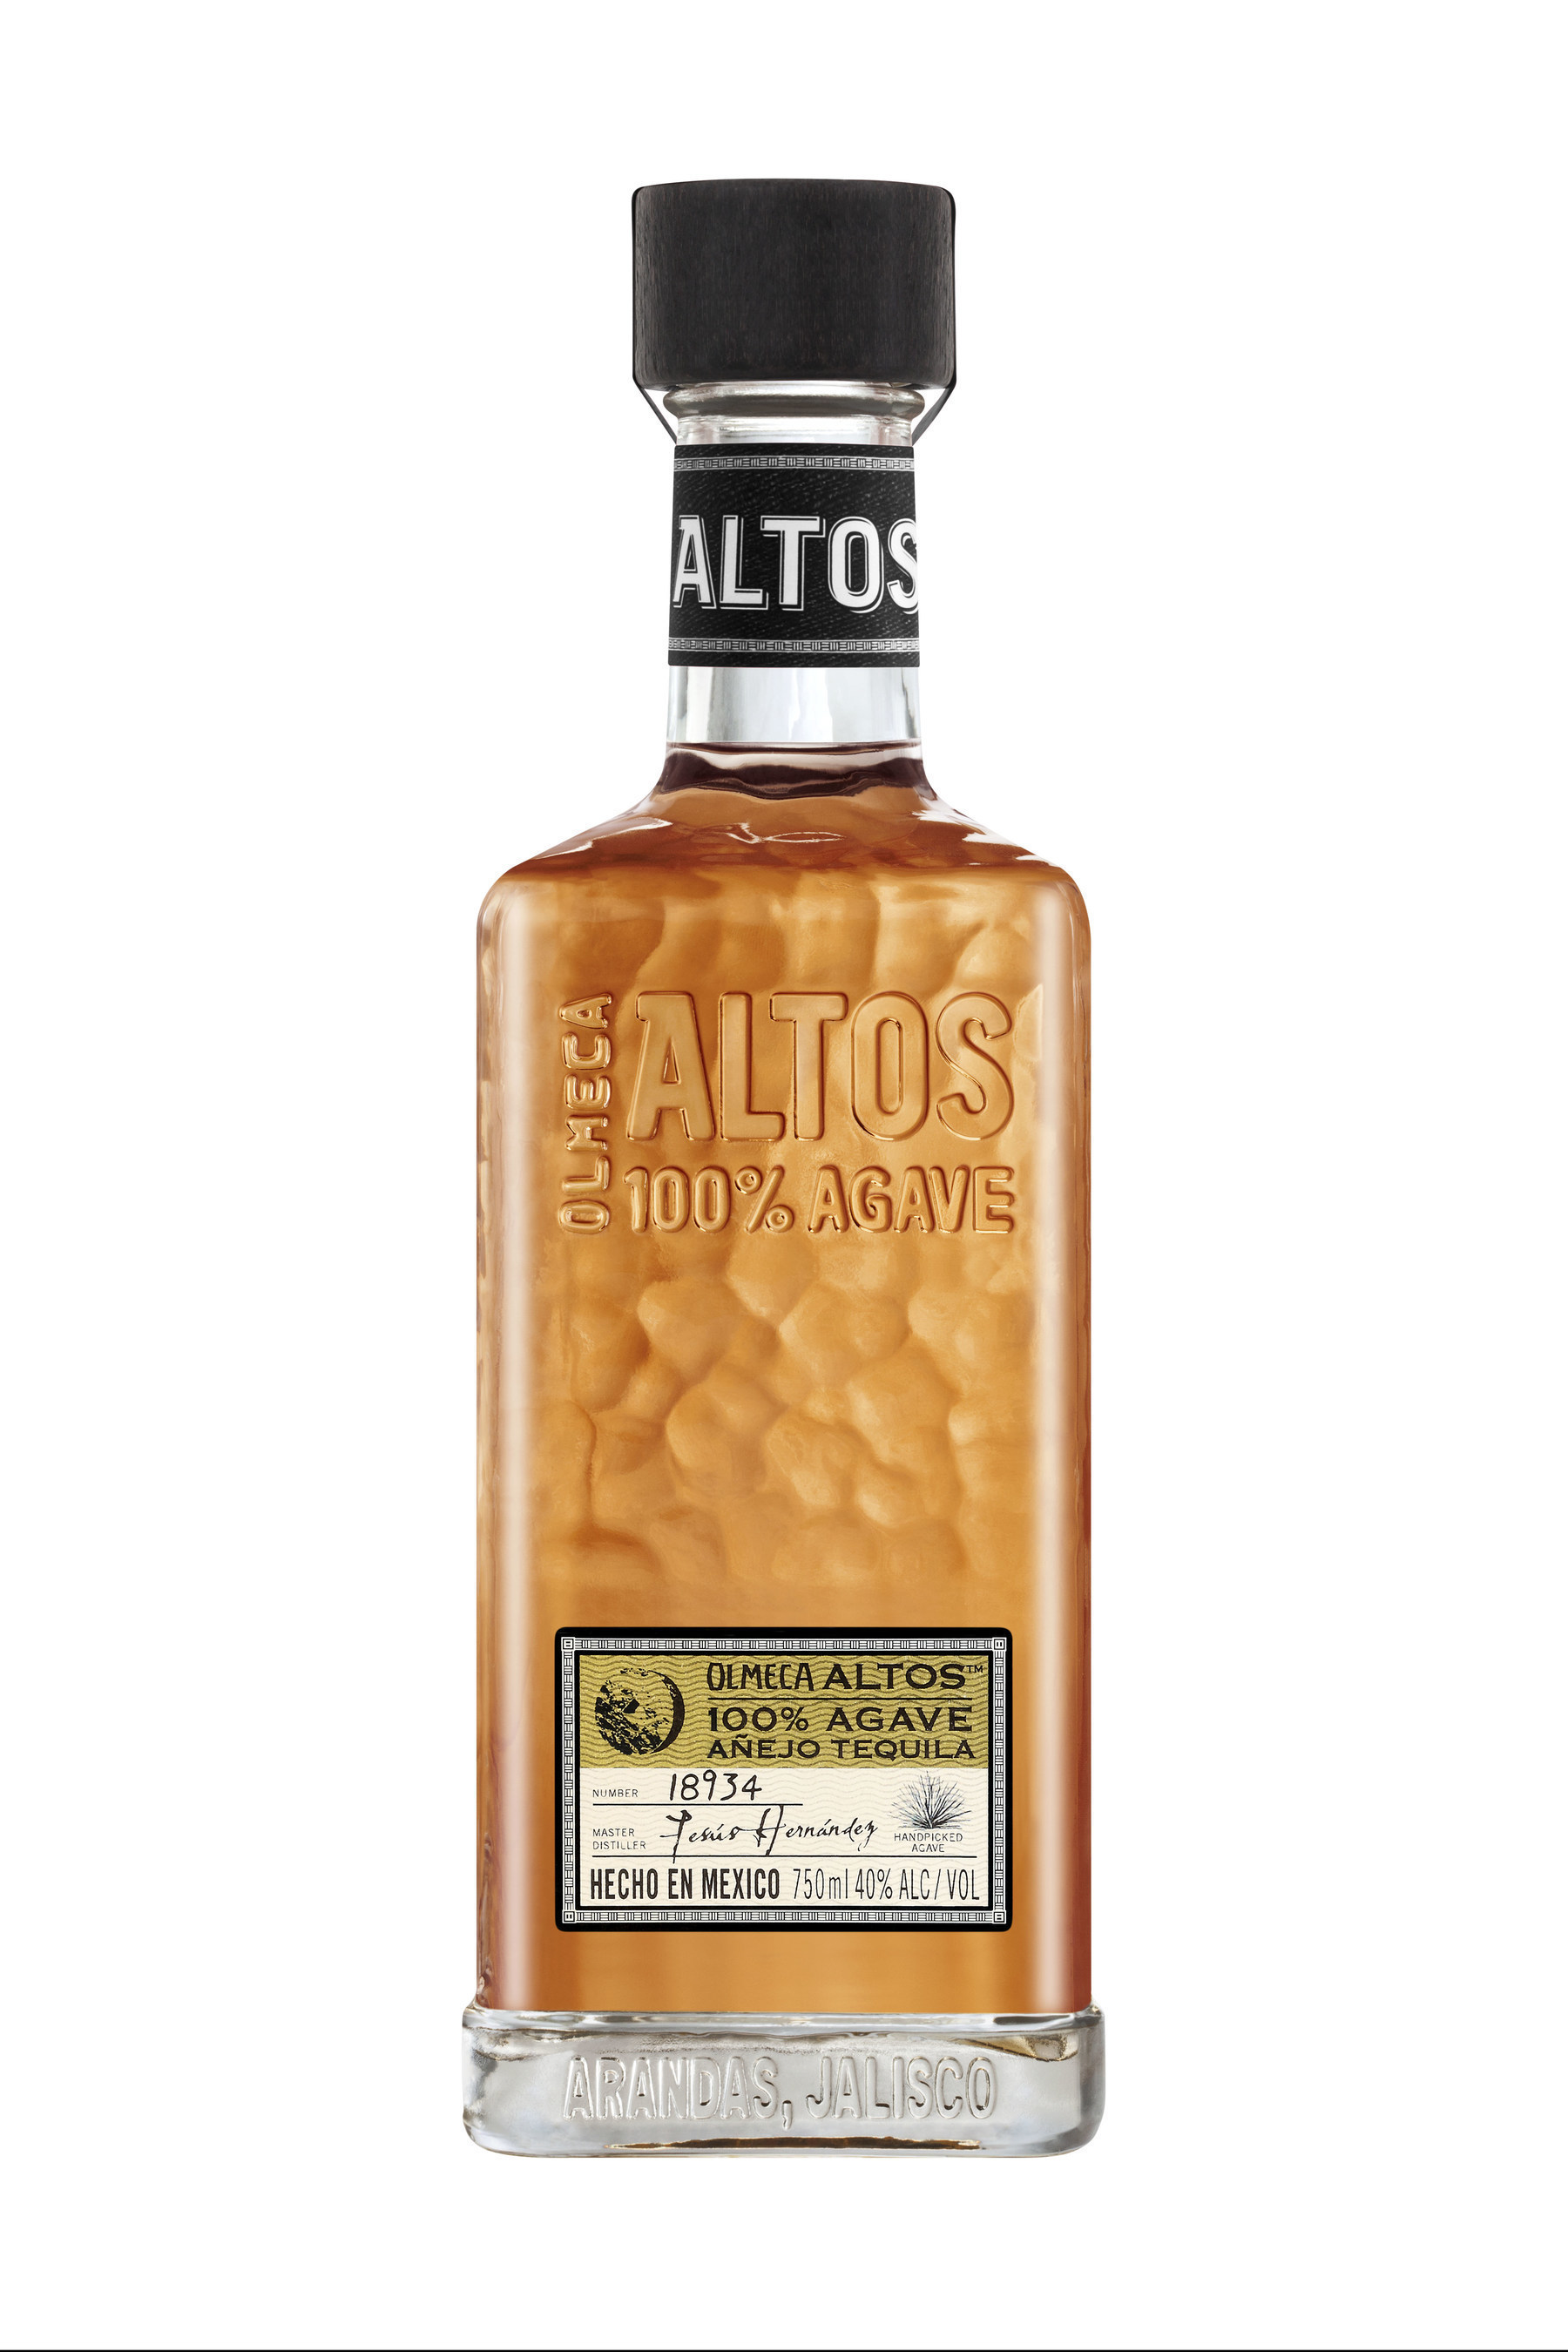 Olmeca Altos Anejo is available on-premise in select markets including California, Colorado, Illinois, Florida, New York and Texas at a suggested price of $34.99 for 750 mL.